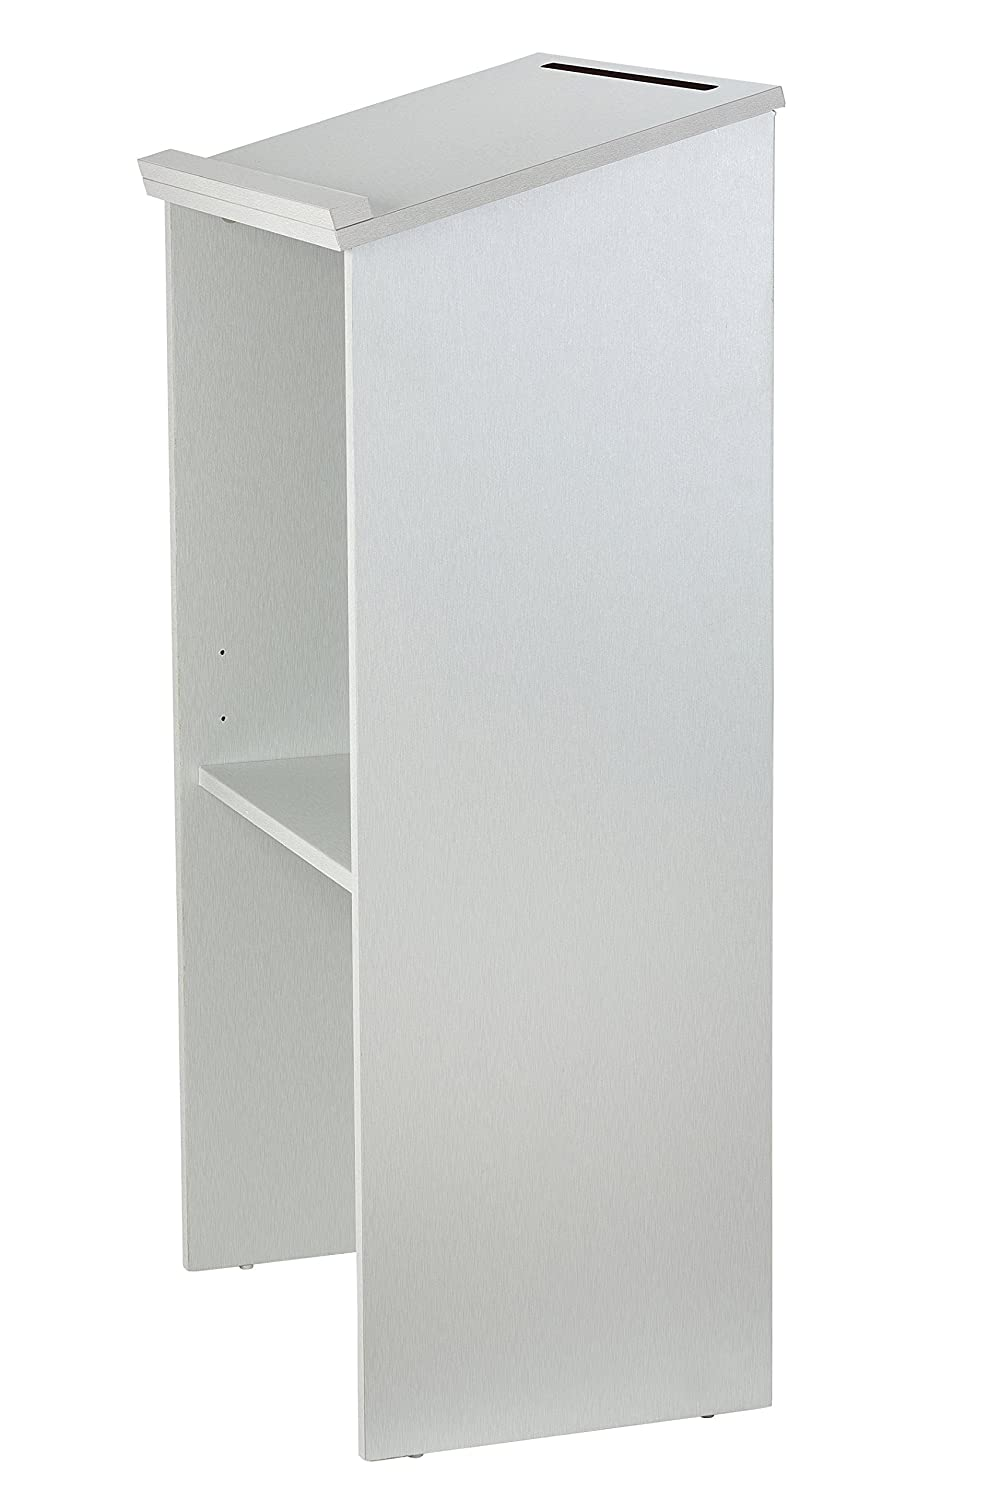 White Wood Lectern with Adjustable Shelf and Pen//Pencil Tray Floor-Standing Podium AdirOffice Stand up